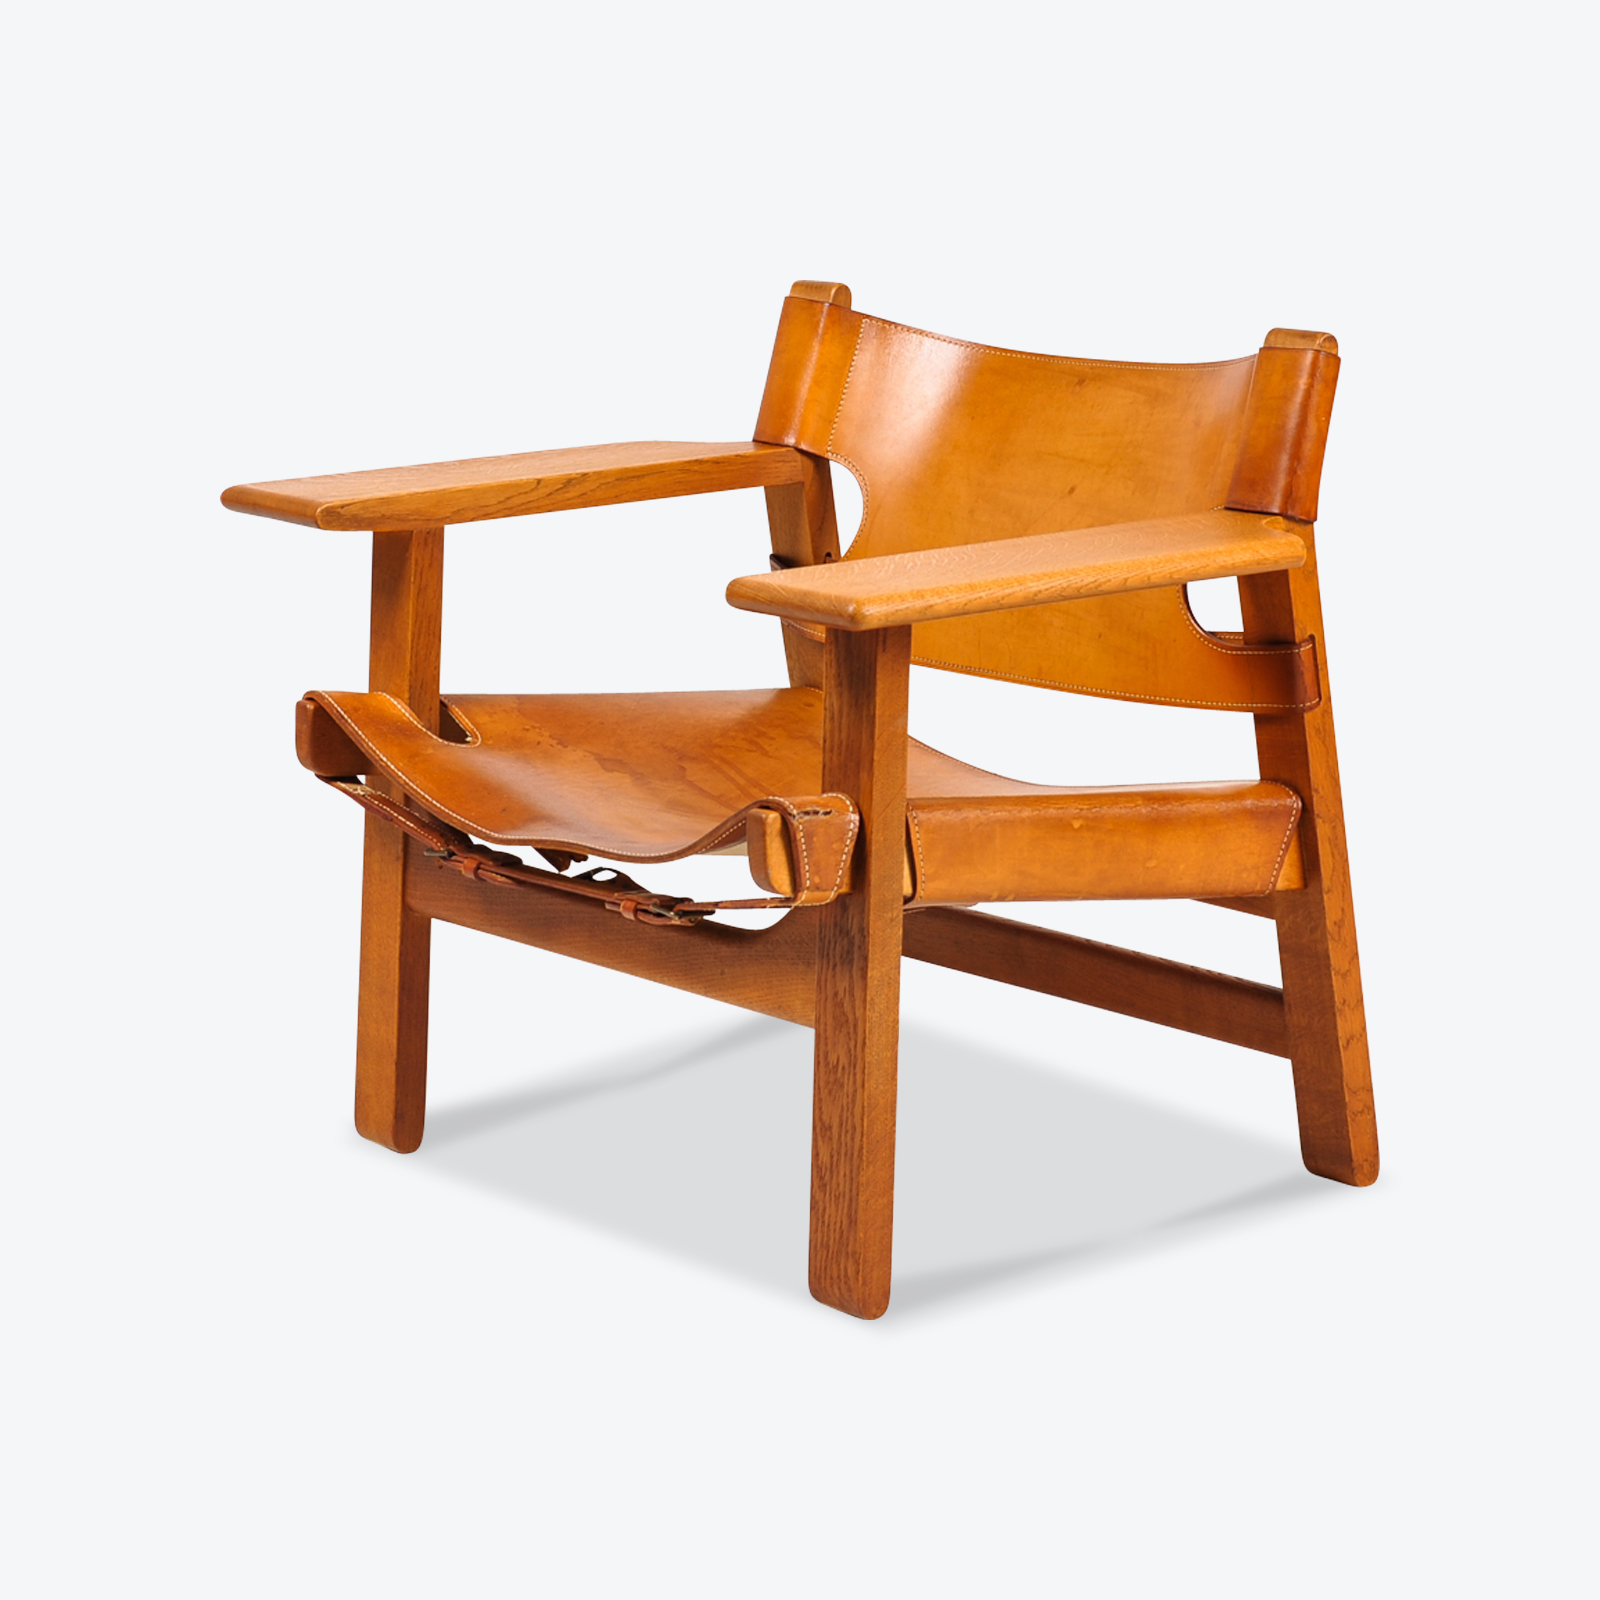 Chair In Spanish Spanish Chair By Borge Mogensen For Fredericia In Tan Leather 1950s Denmark